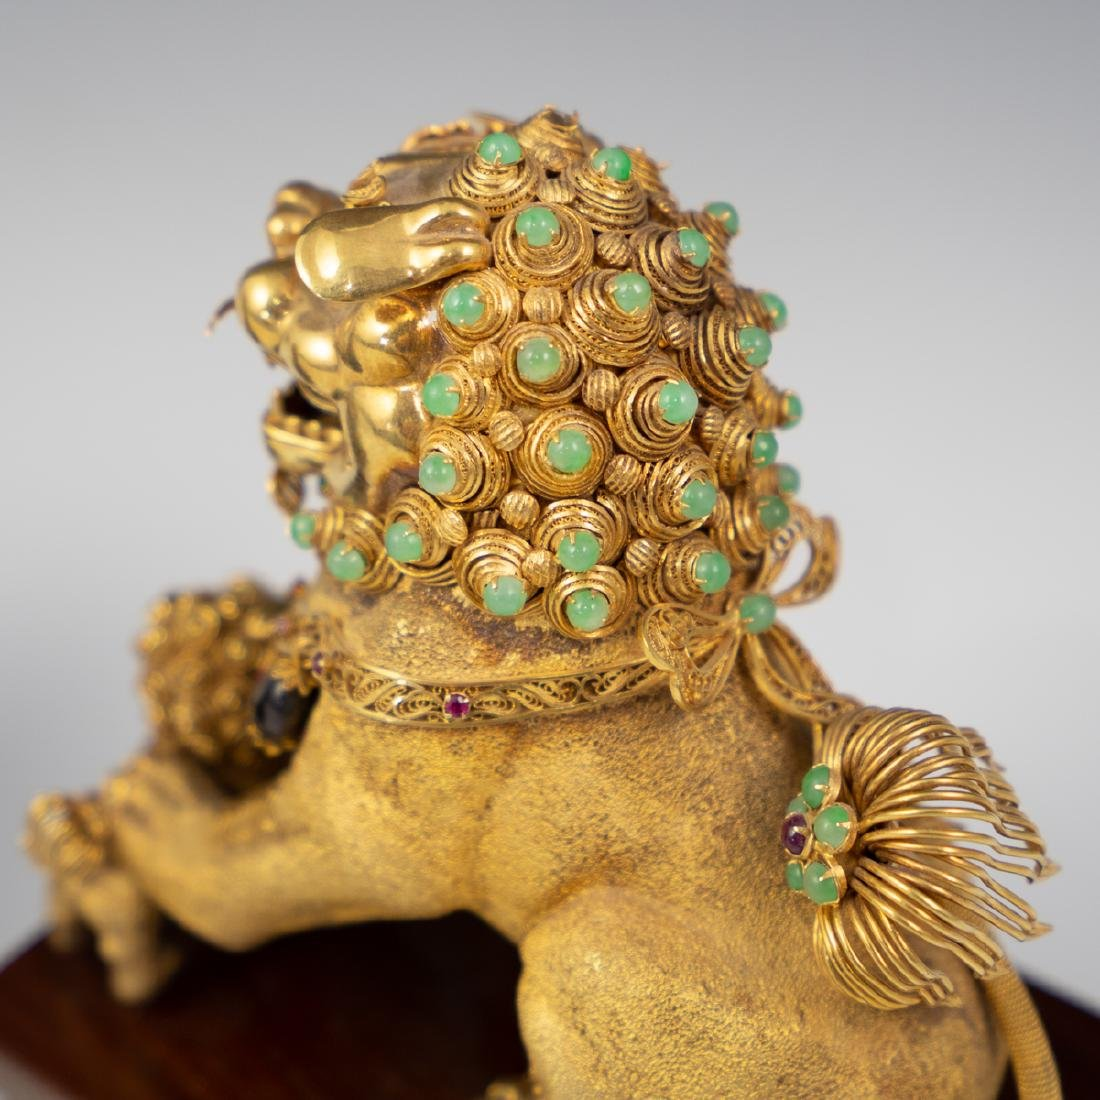 14K Solid Gold and Precious Stone Foo Dog - 6